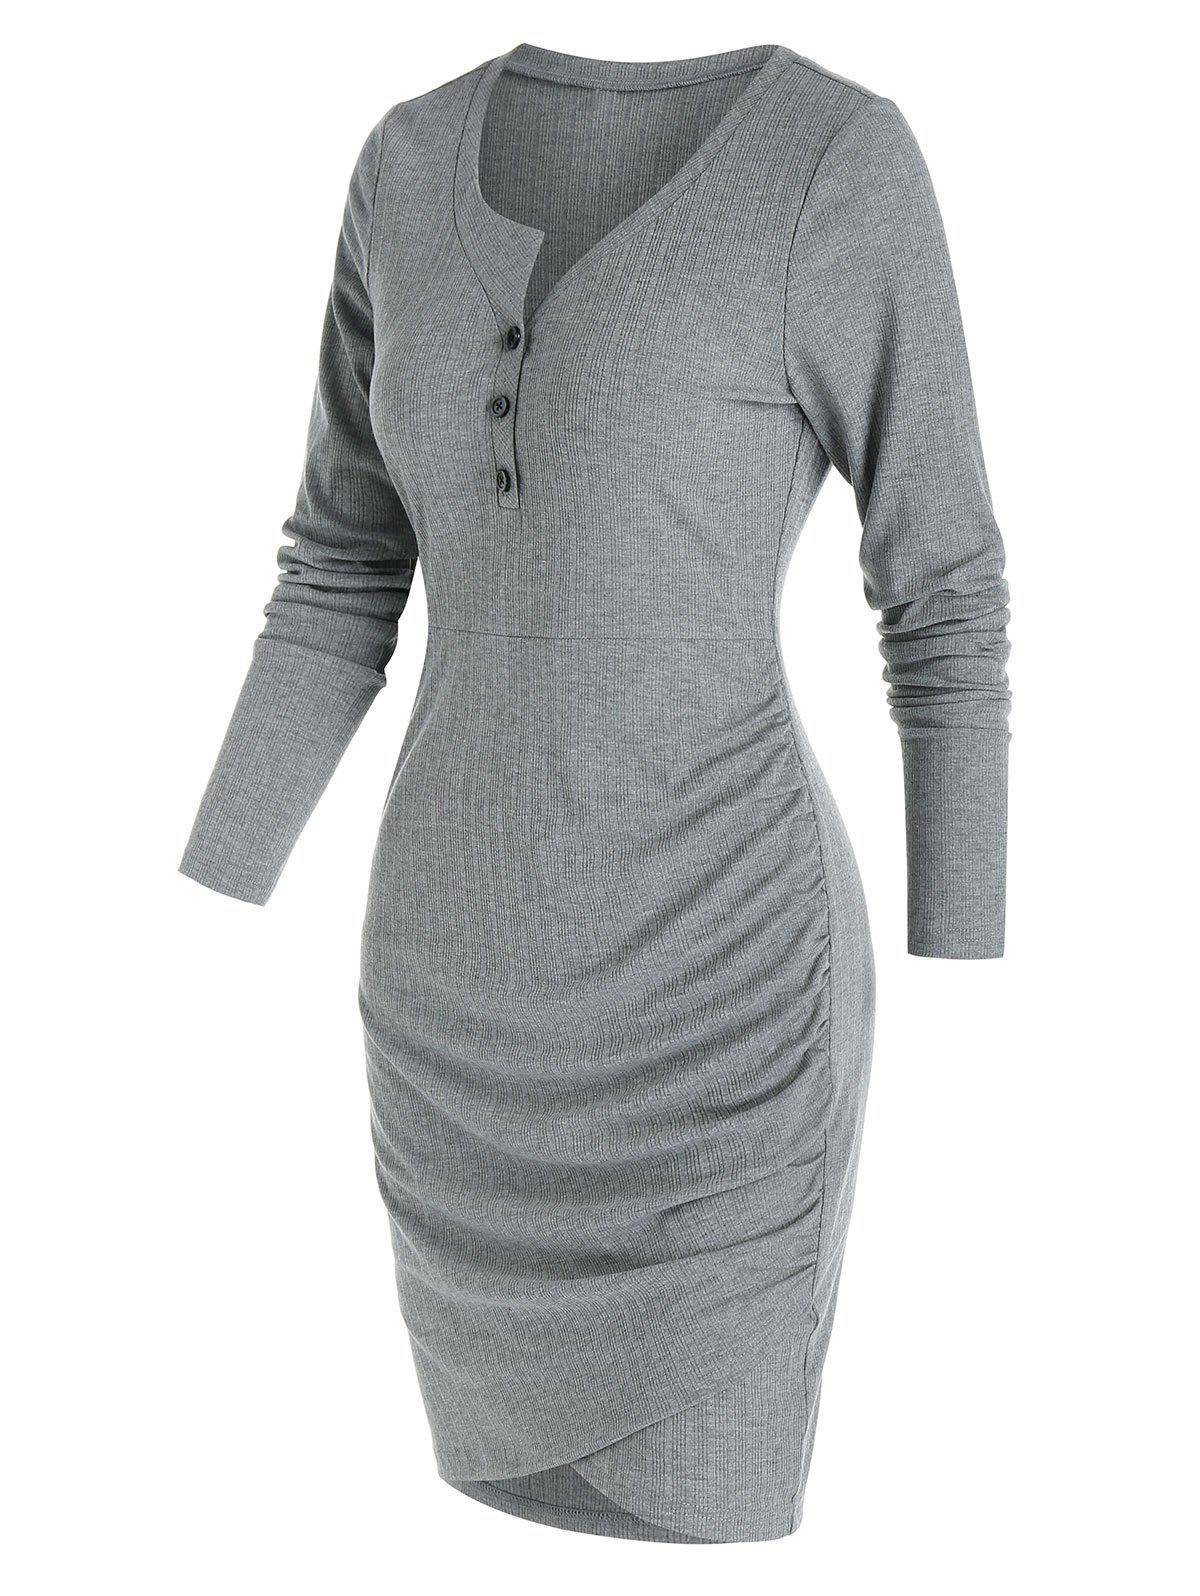 Plain Henley Tulip Hem Mini Sheath Dress - DARK GRAY 2XL